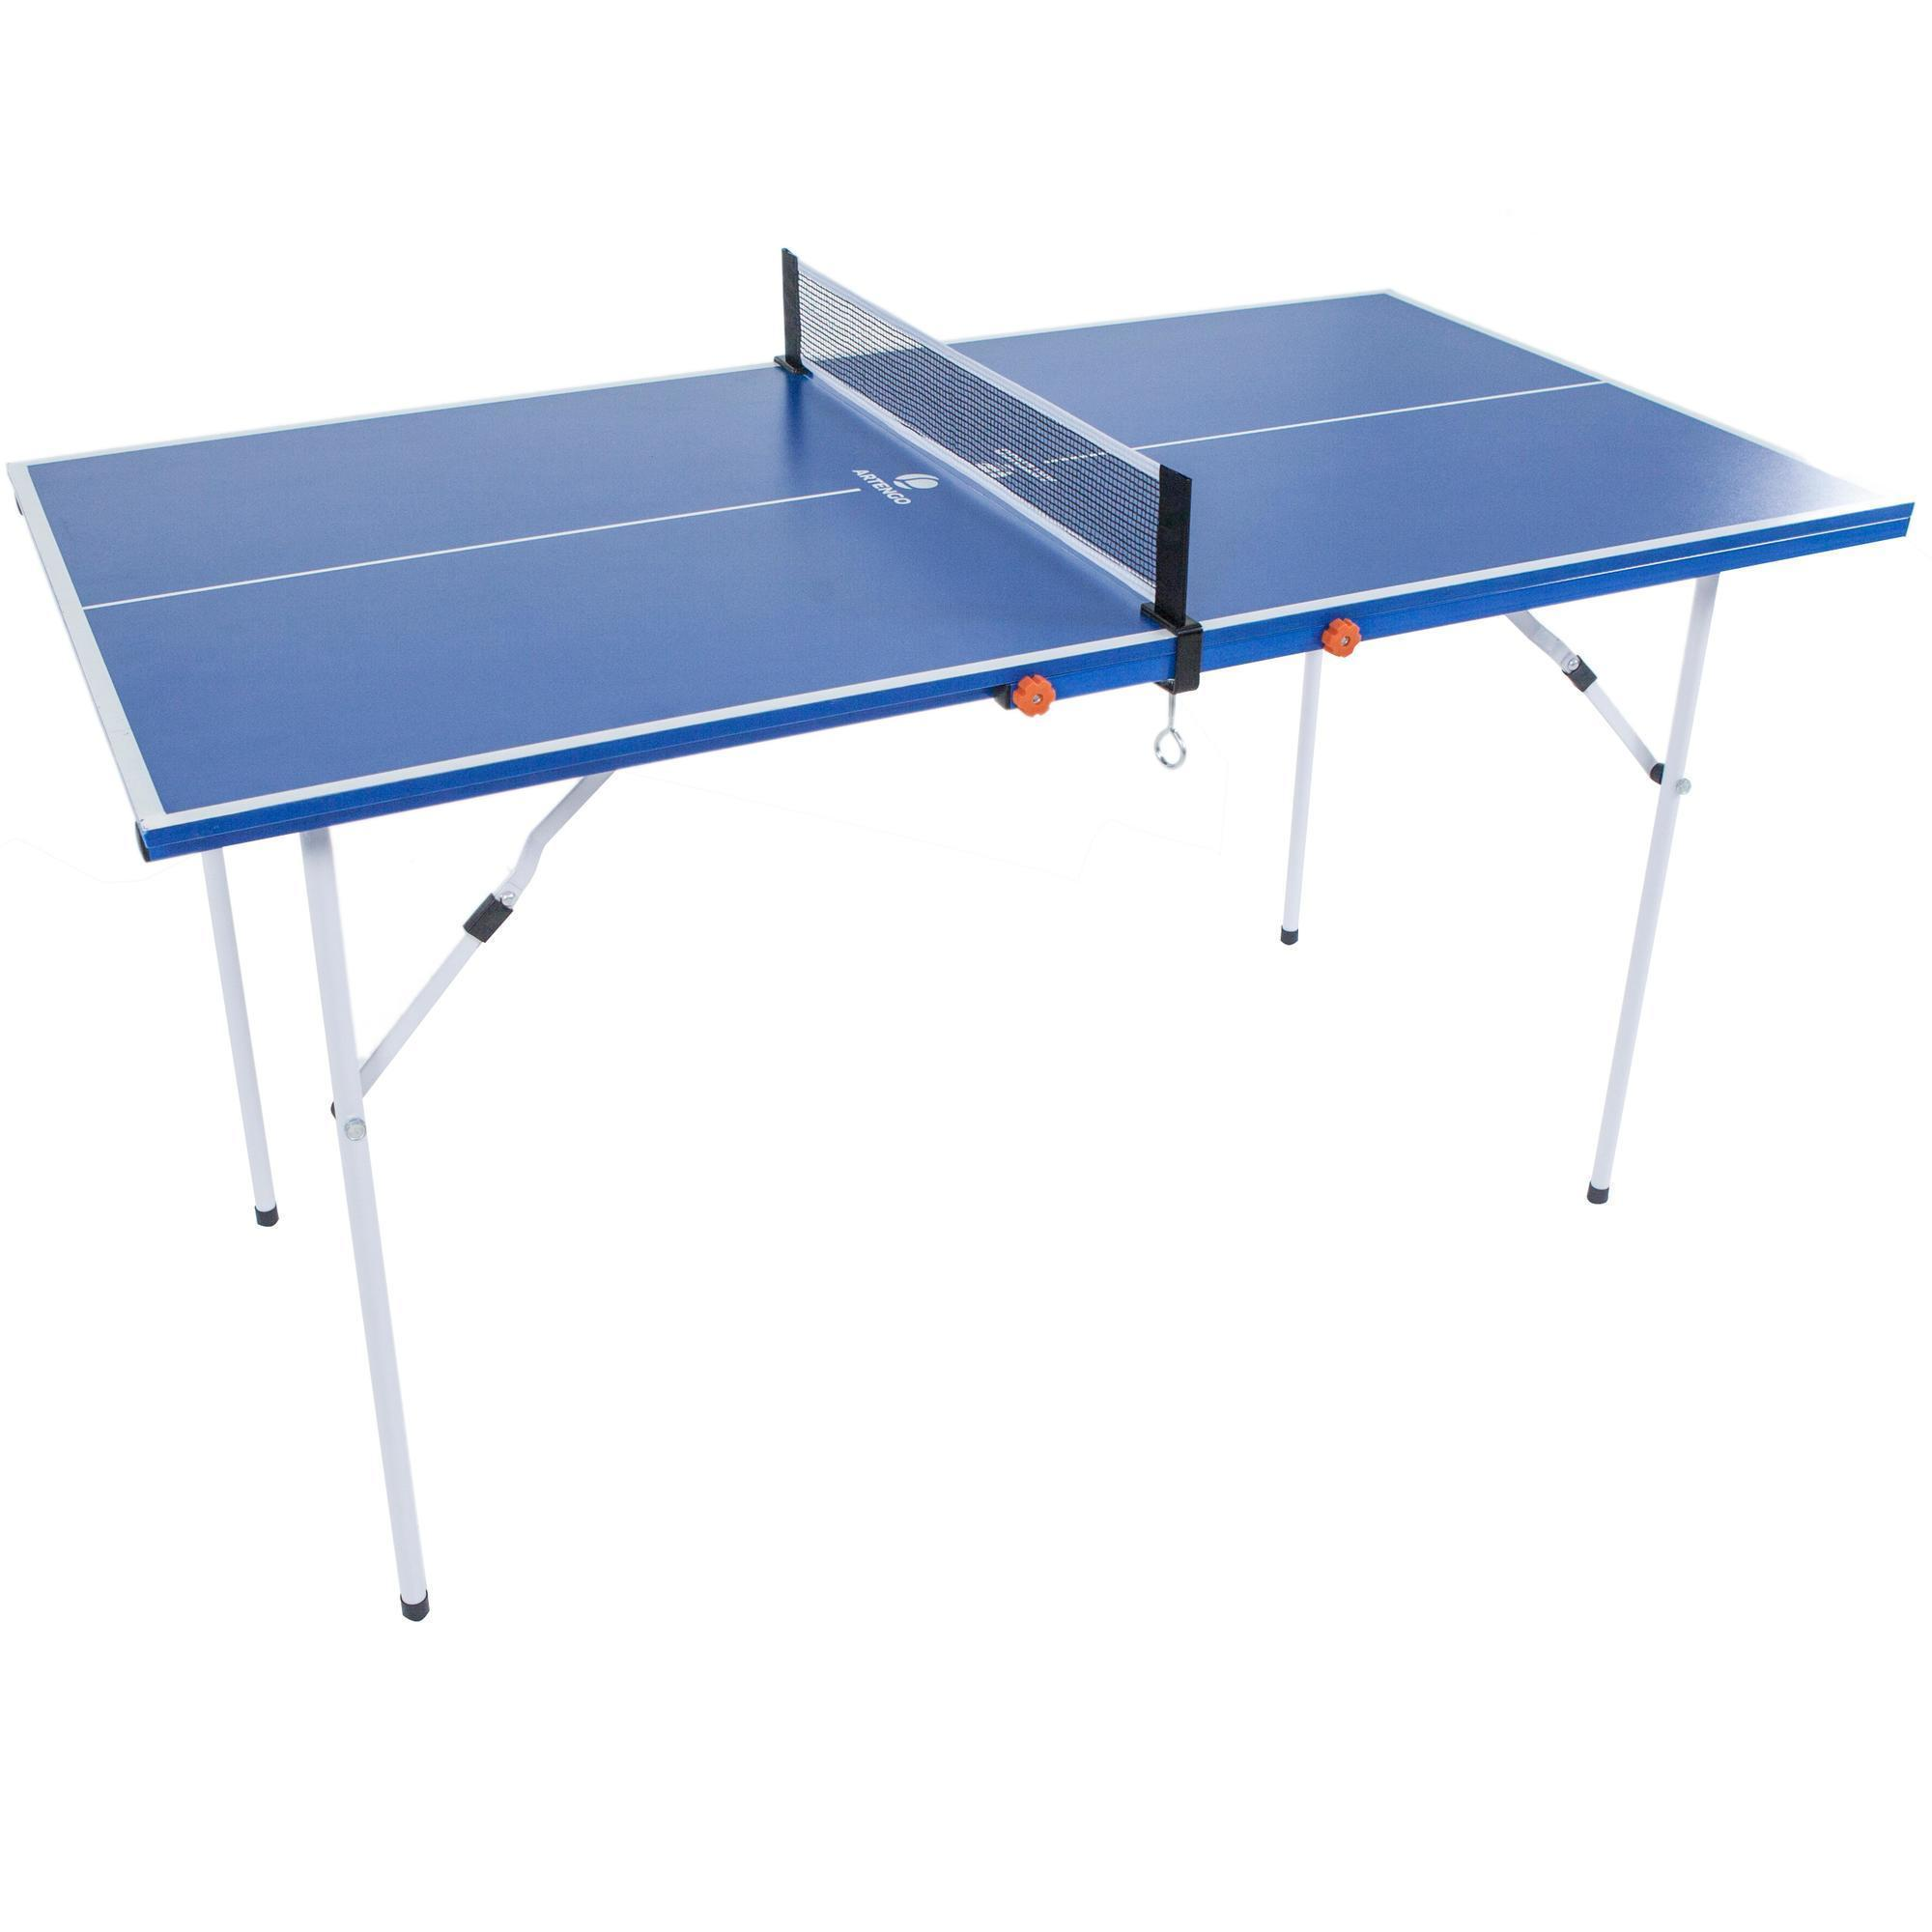 Mini ft free table tennis table artengo for Table tennis